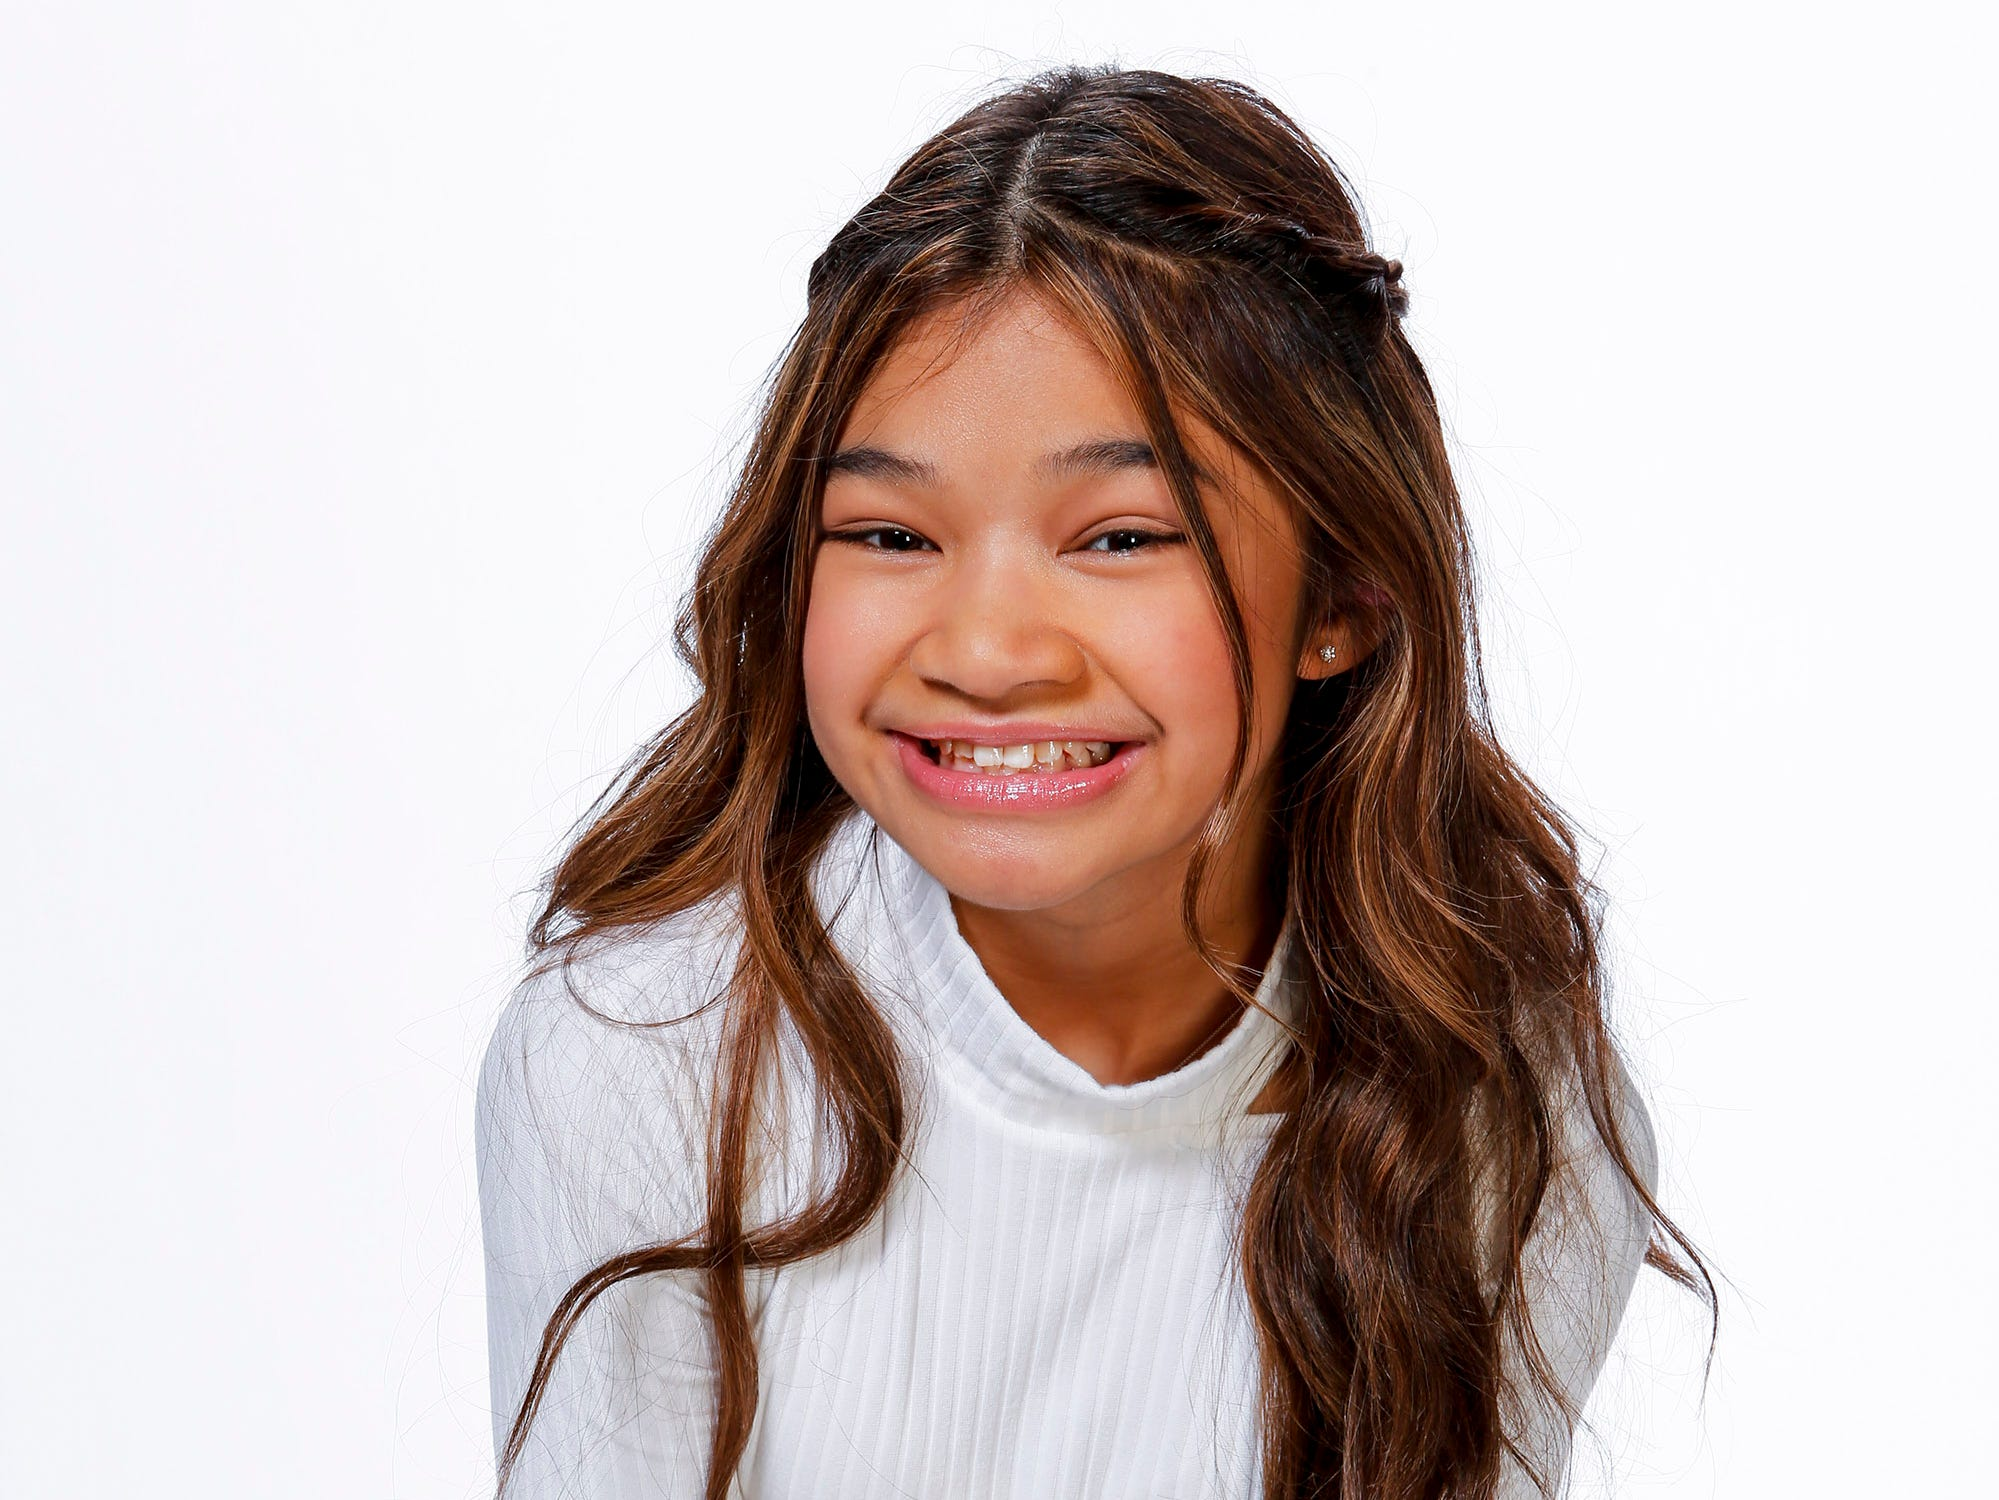 'AGT: The Champions': Transplant survivor Angelica Hale's 'Fight Song' earns Golden Buzzer